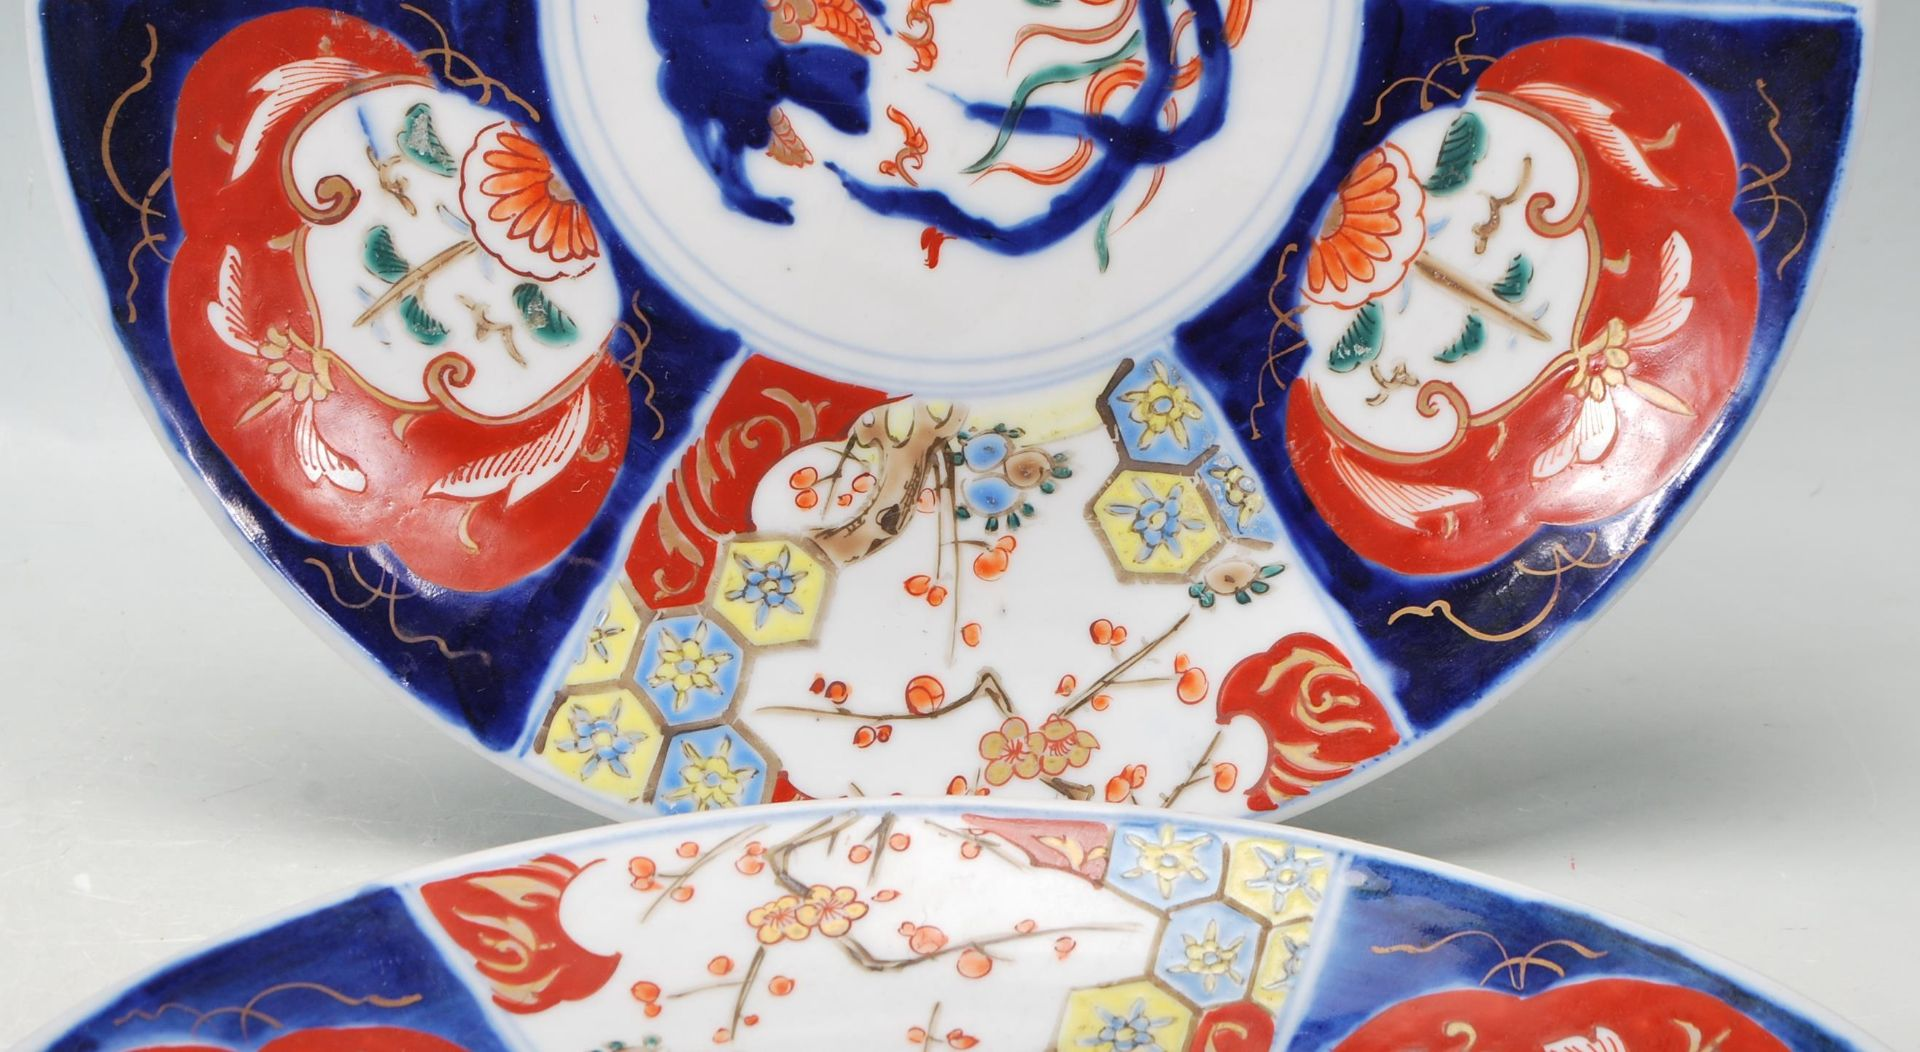 TWO 19TH CETURY 20TH CETURY CHINESE ORIENTAL CHARGERS - Image 3 of 7